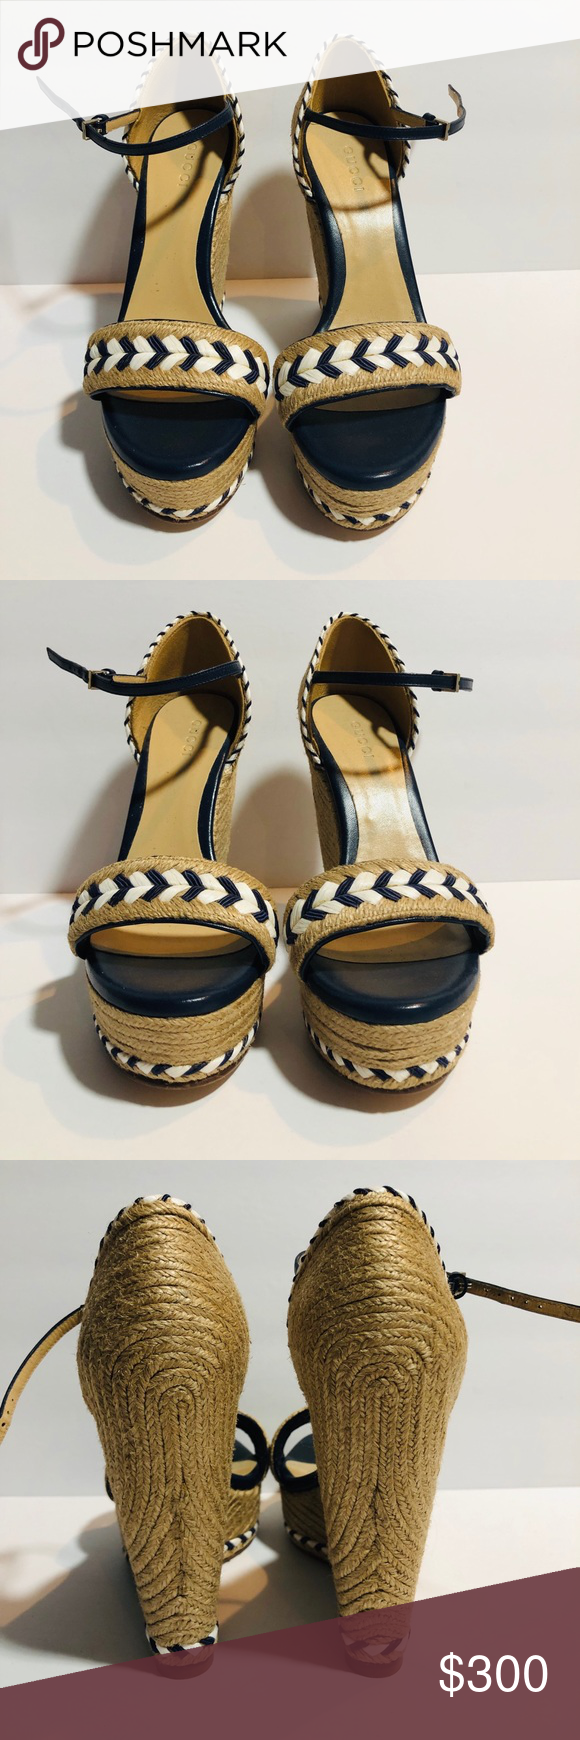 ae53dac714c Gucci Wedges 100% Authentic Gucci Wedges. Only worn once